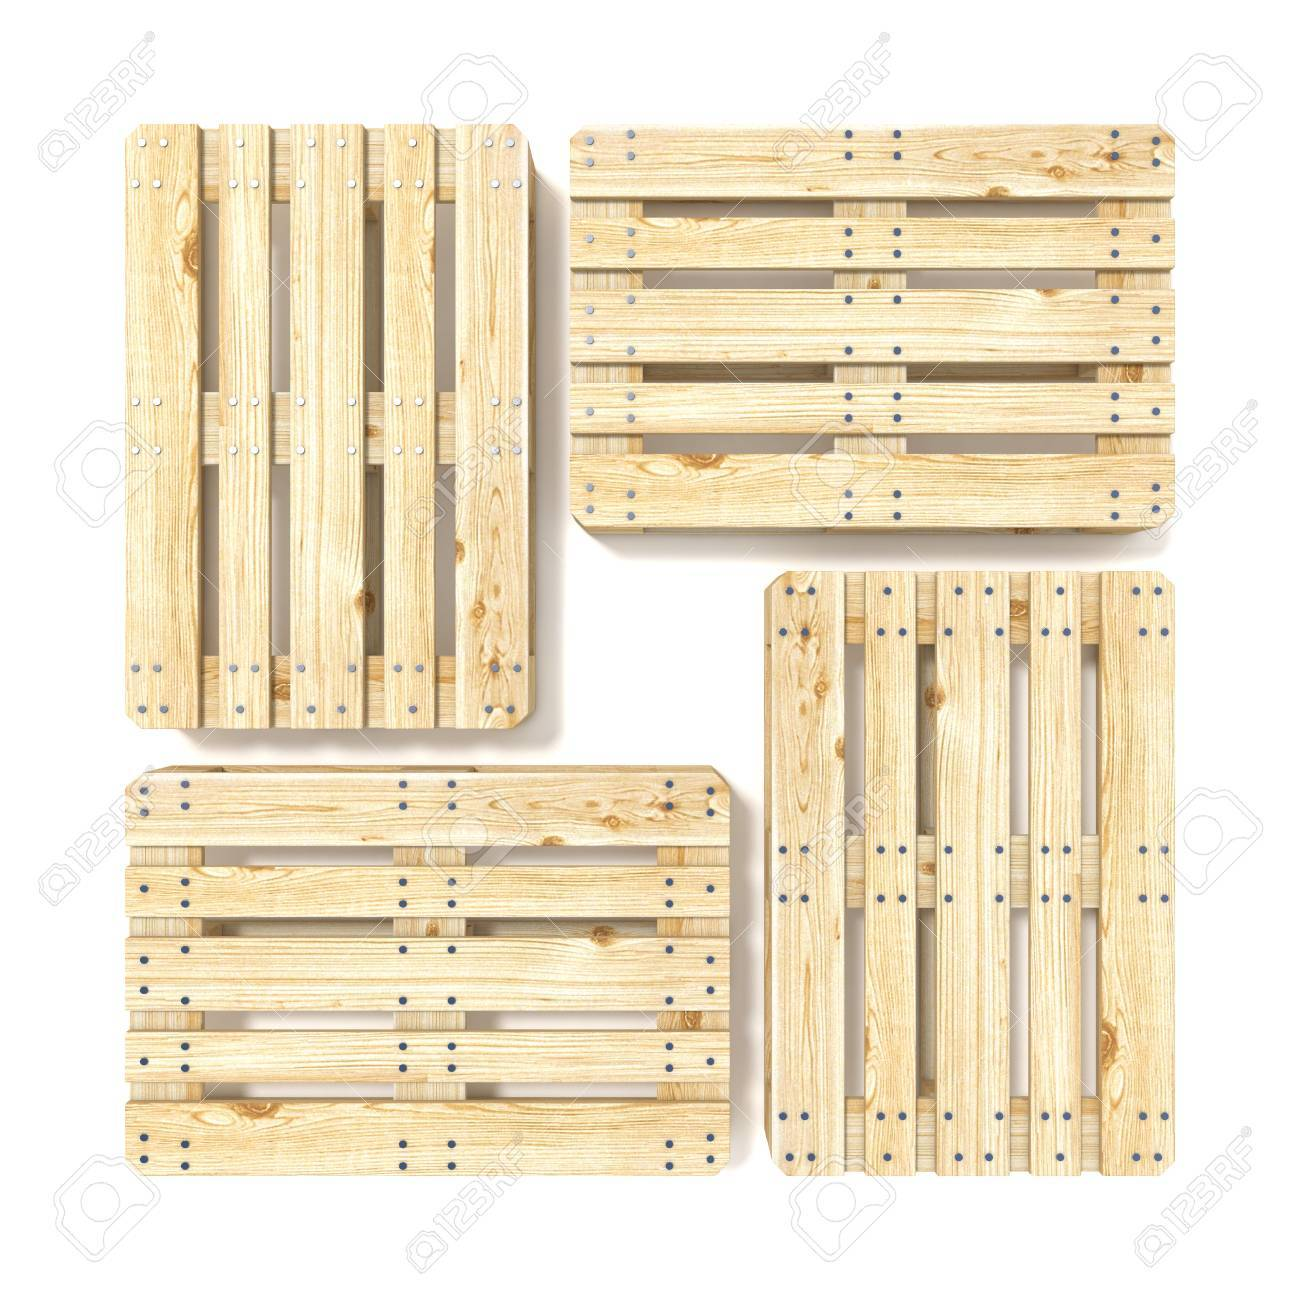 Wooden Euro Pallets Top View 3D Render Illustration Isolated